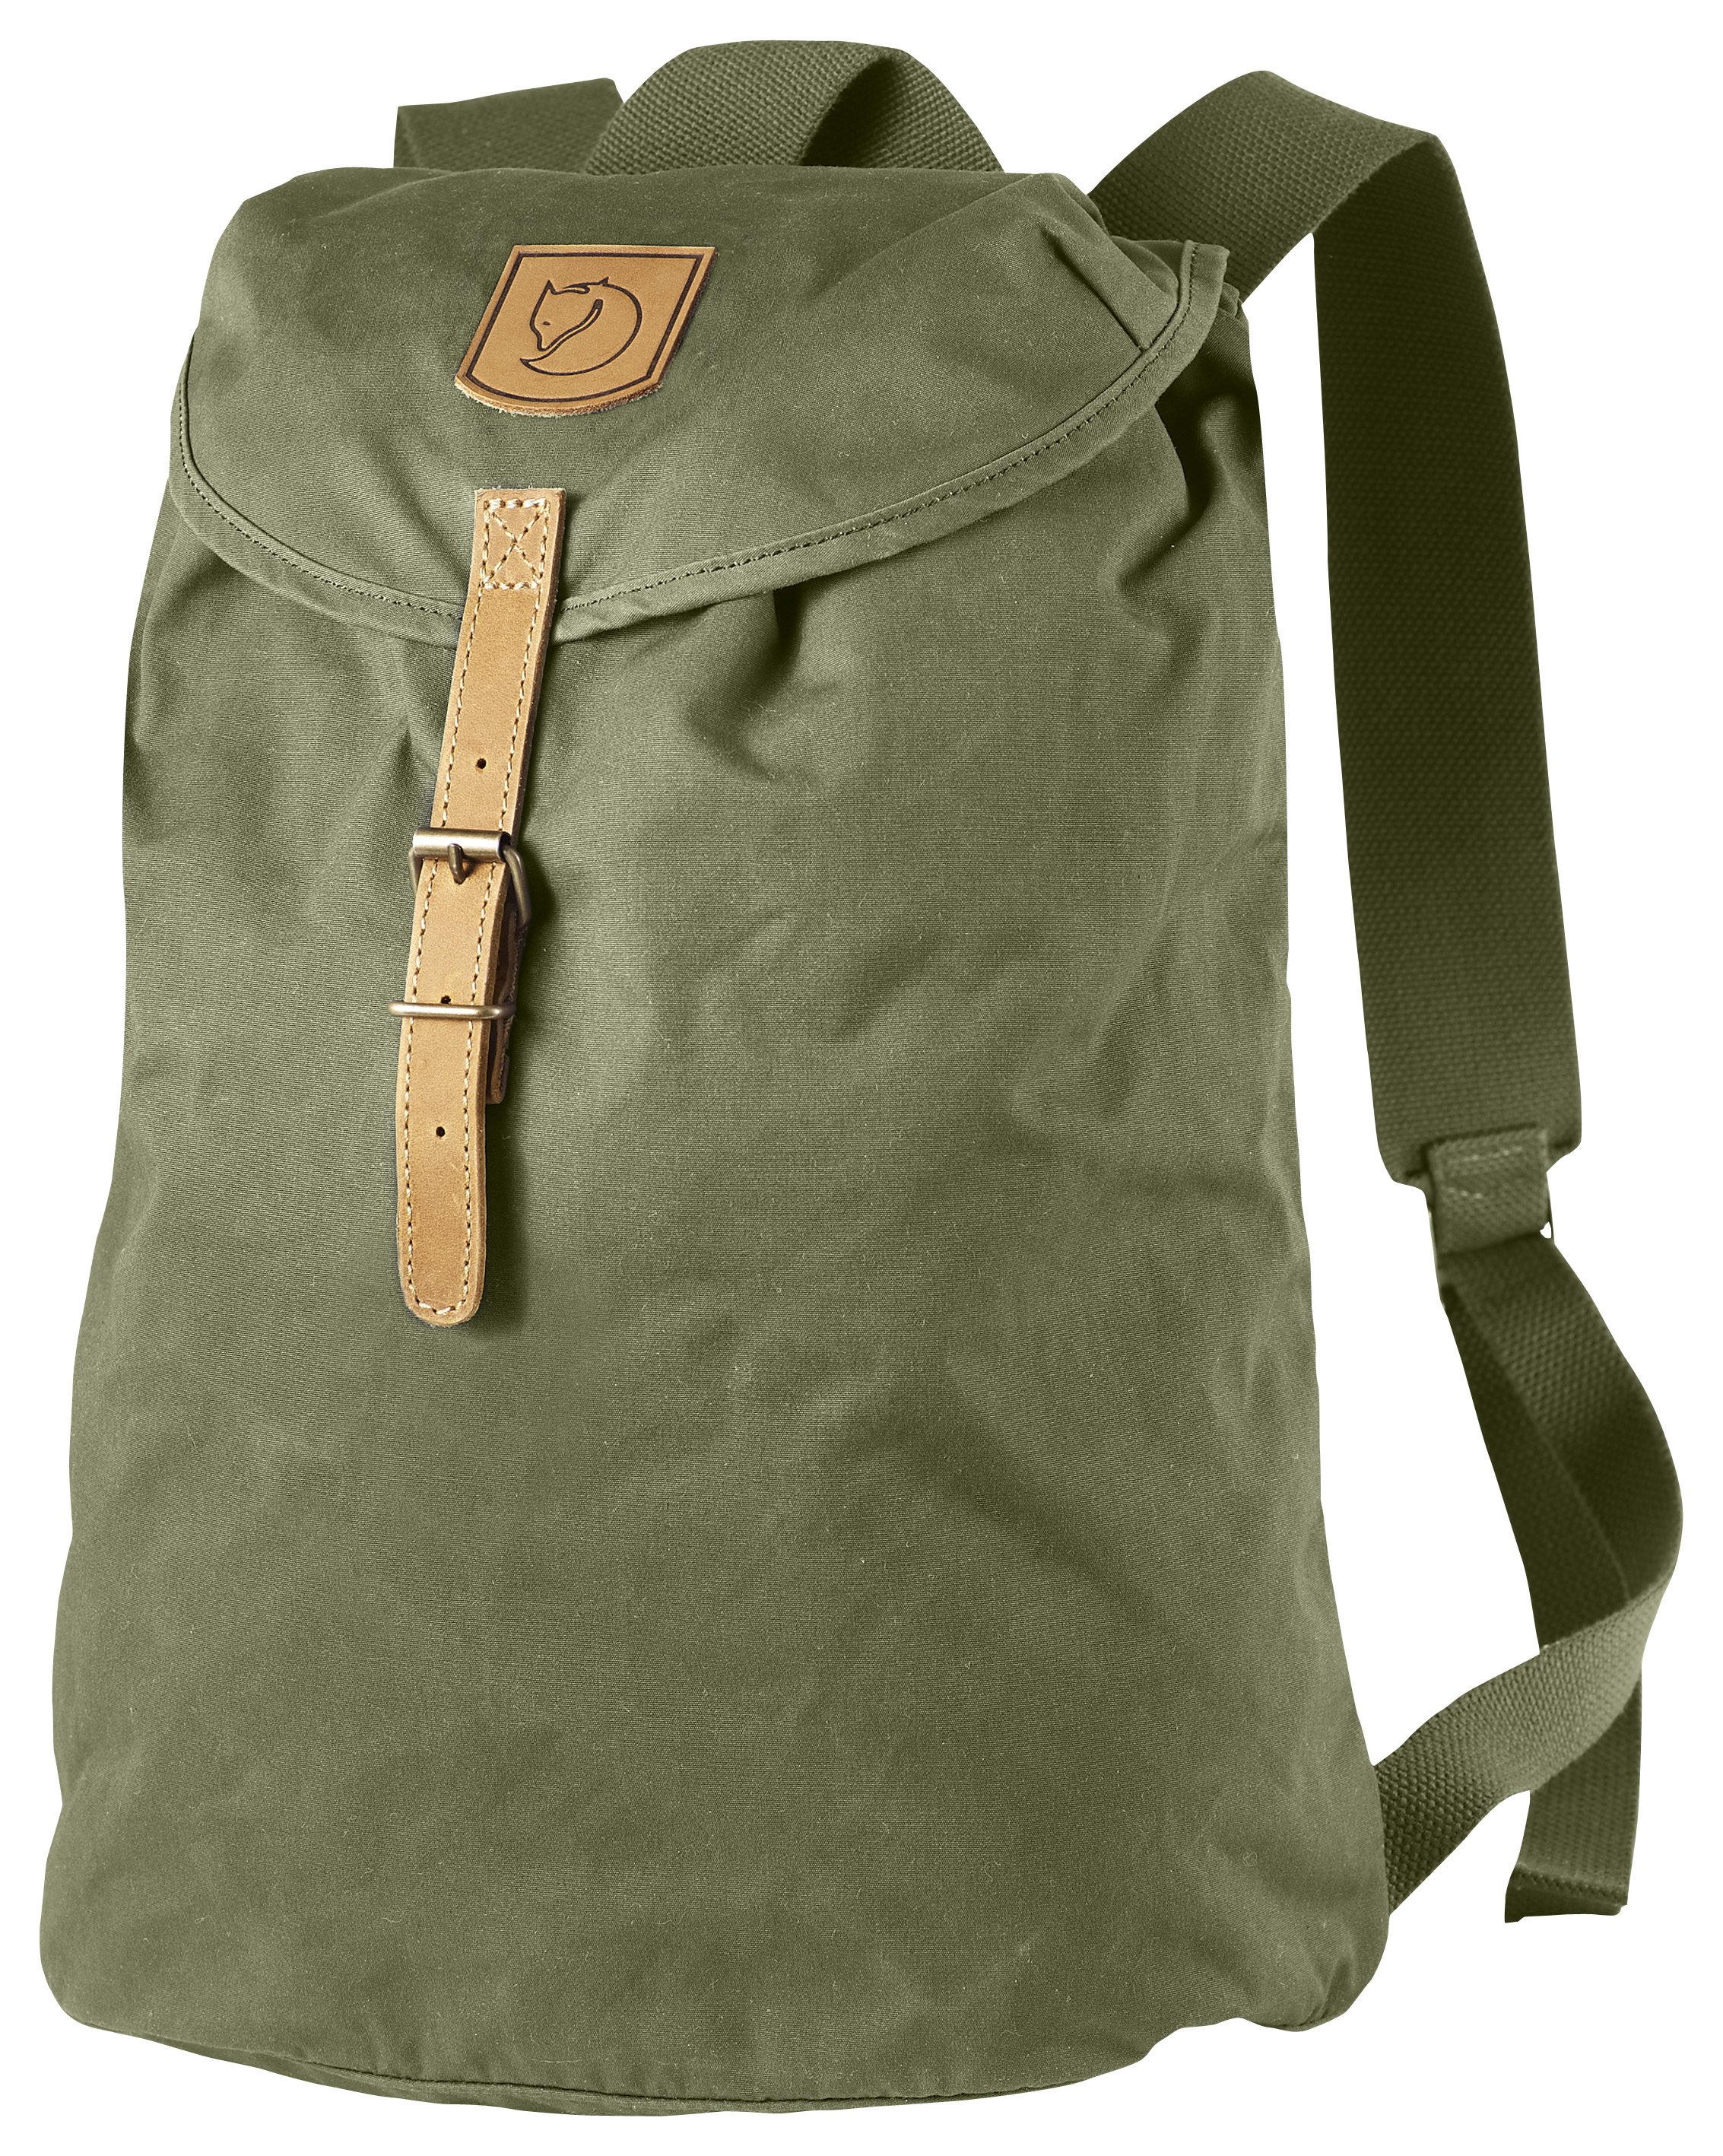 c26ae3e7a Fjallraven Greenland Backpack Small | 42% Off 5 Star Rating w/ Free  Shipping and Handling